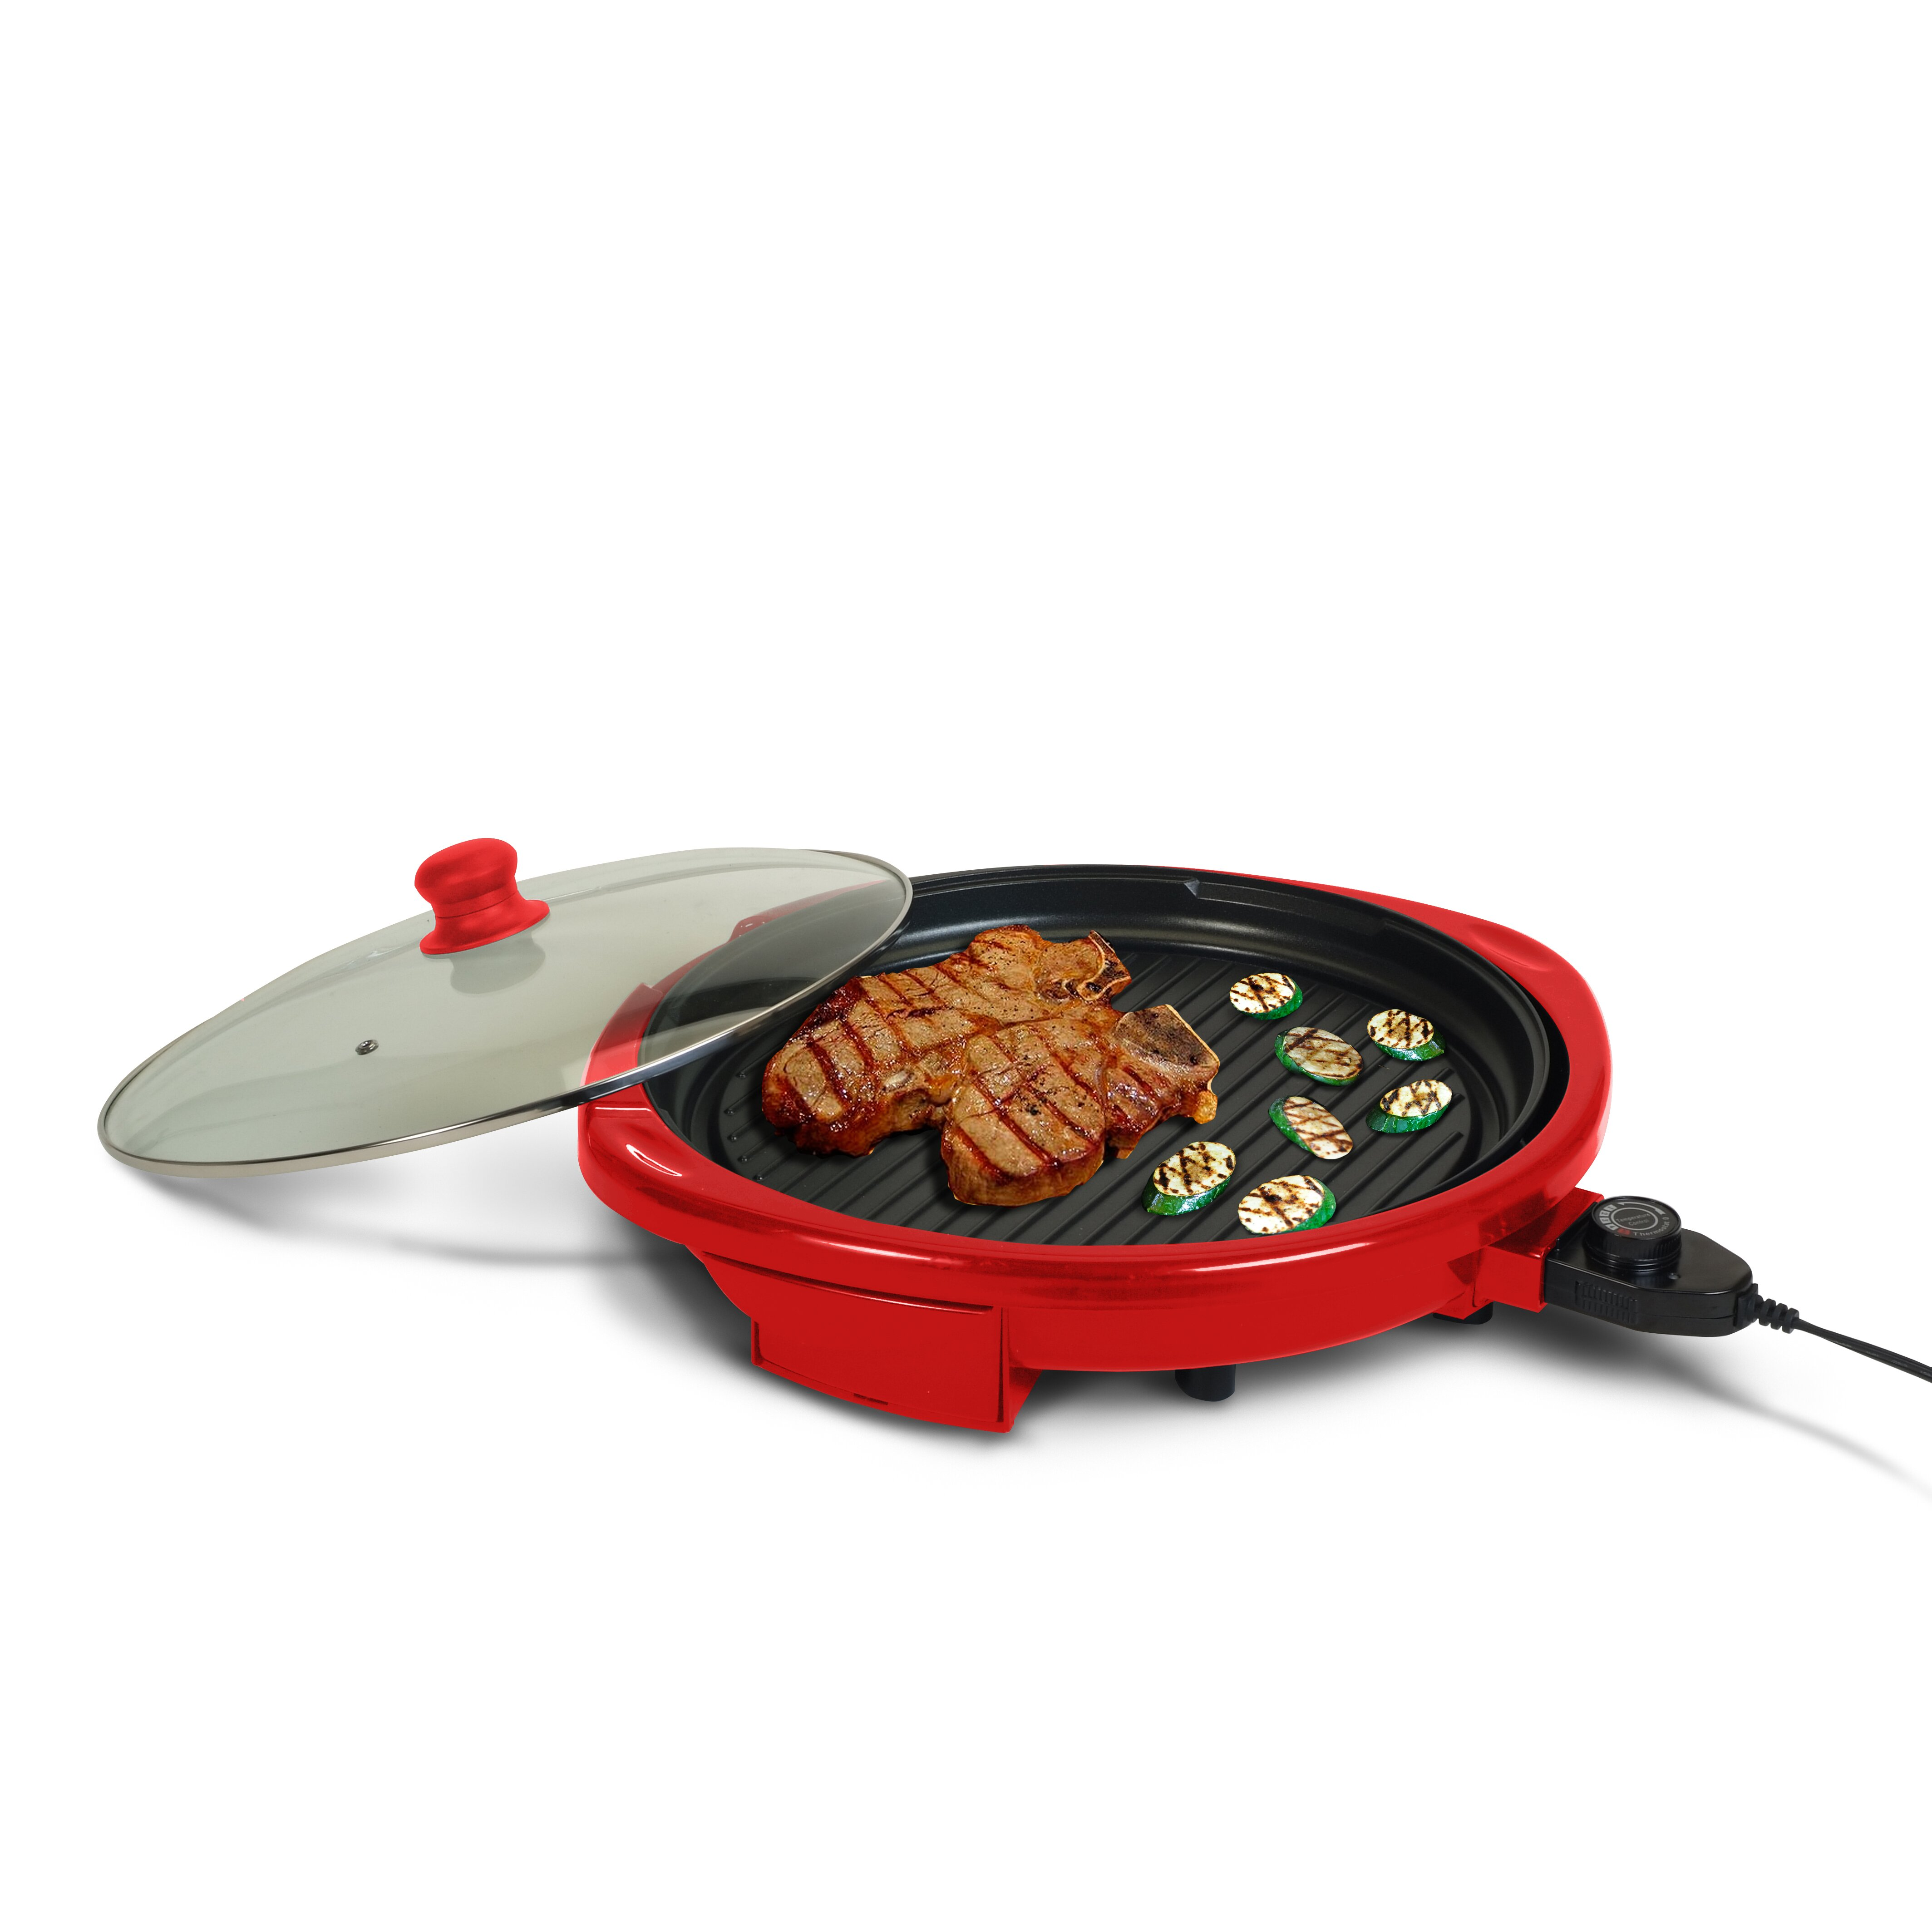 "Elite by Maxi-Matic Gourmet 14"" Electric Indoor Grill with ..."